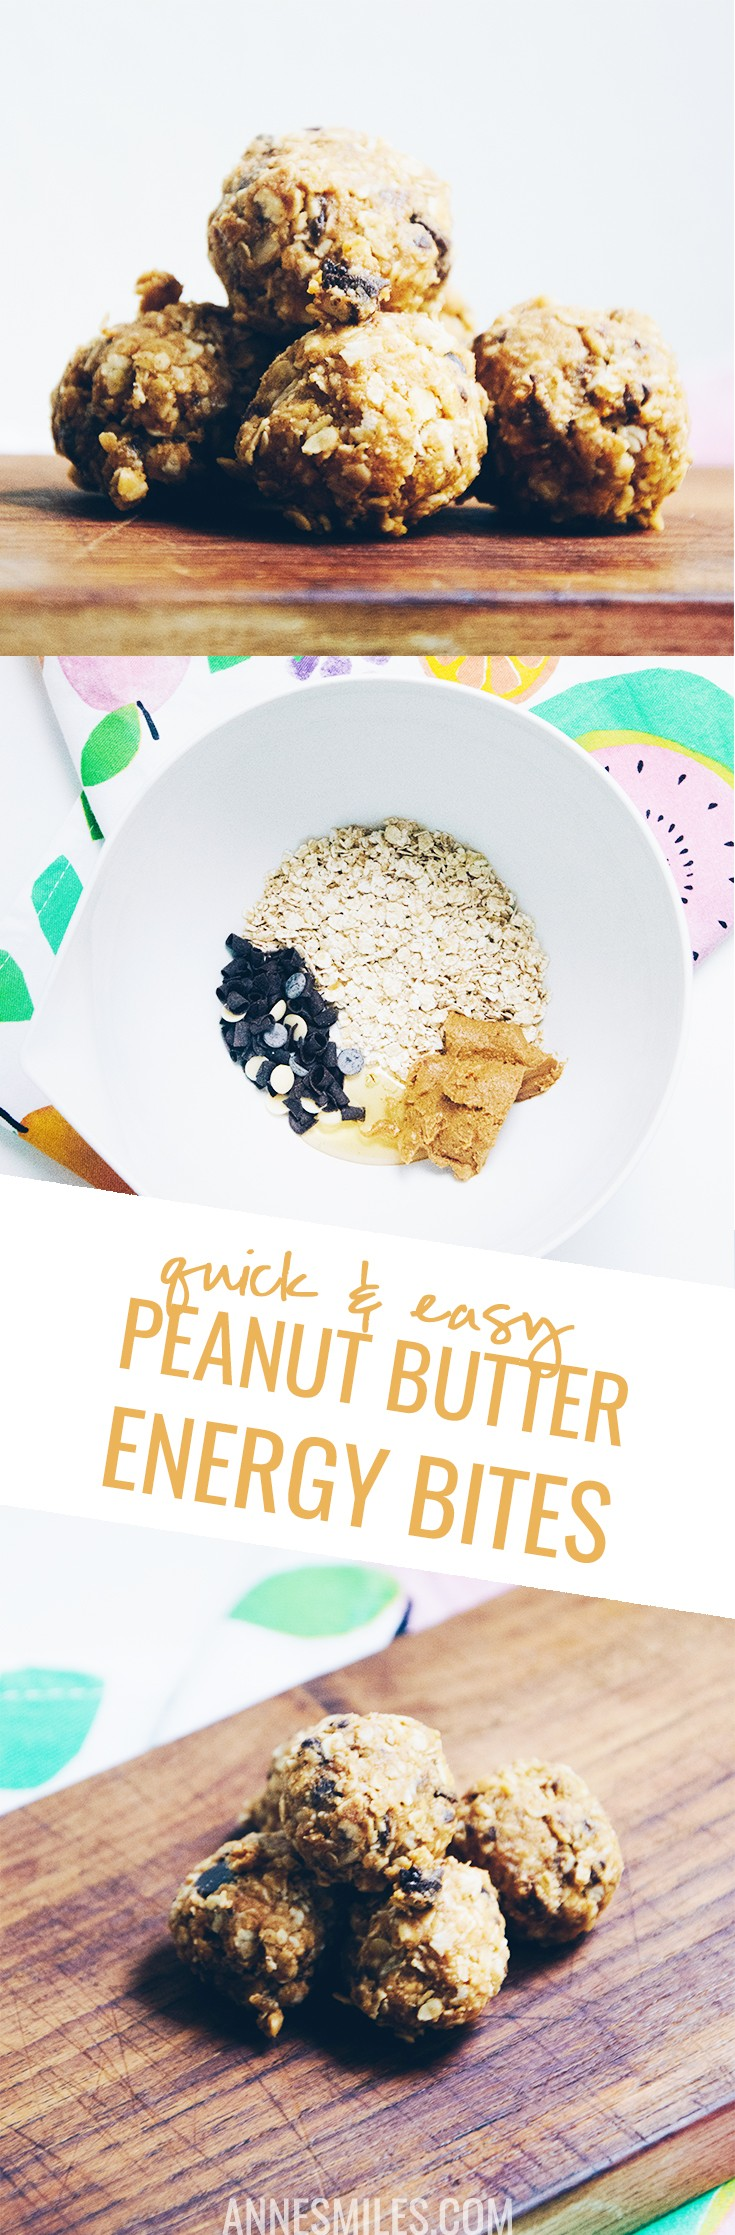 These no-bake energy bites take no more than a few minutes to create and are a great snack for when you're busy and need to eat on the go